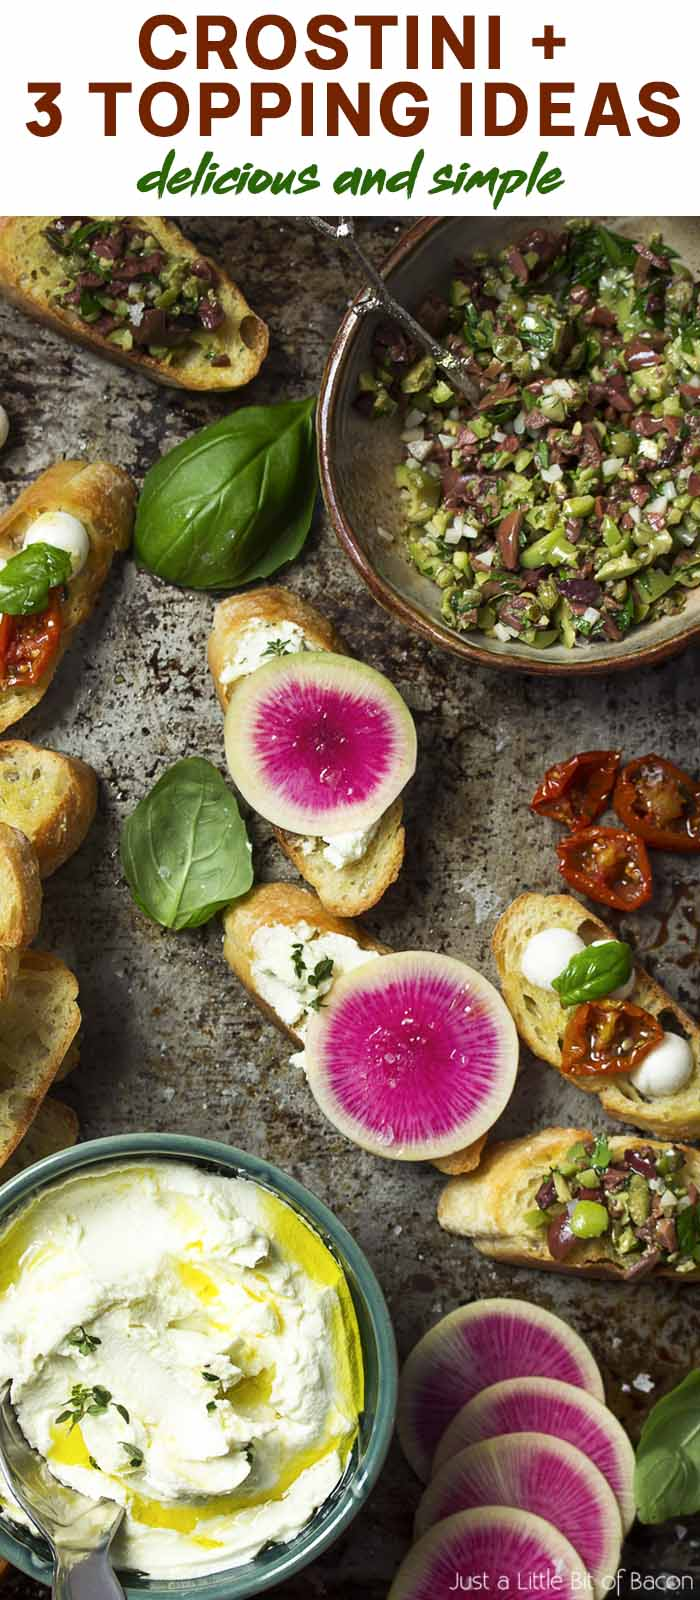 Tray covered with various crostini and text overlay - Crostini + 3 Topping Ideas.